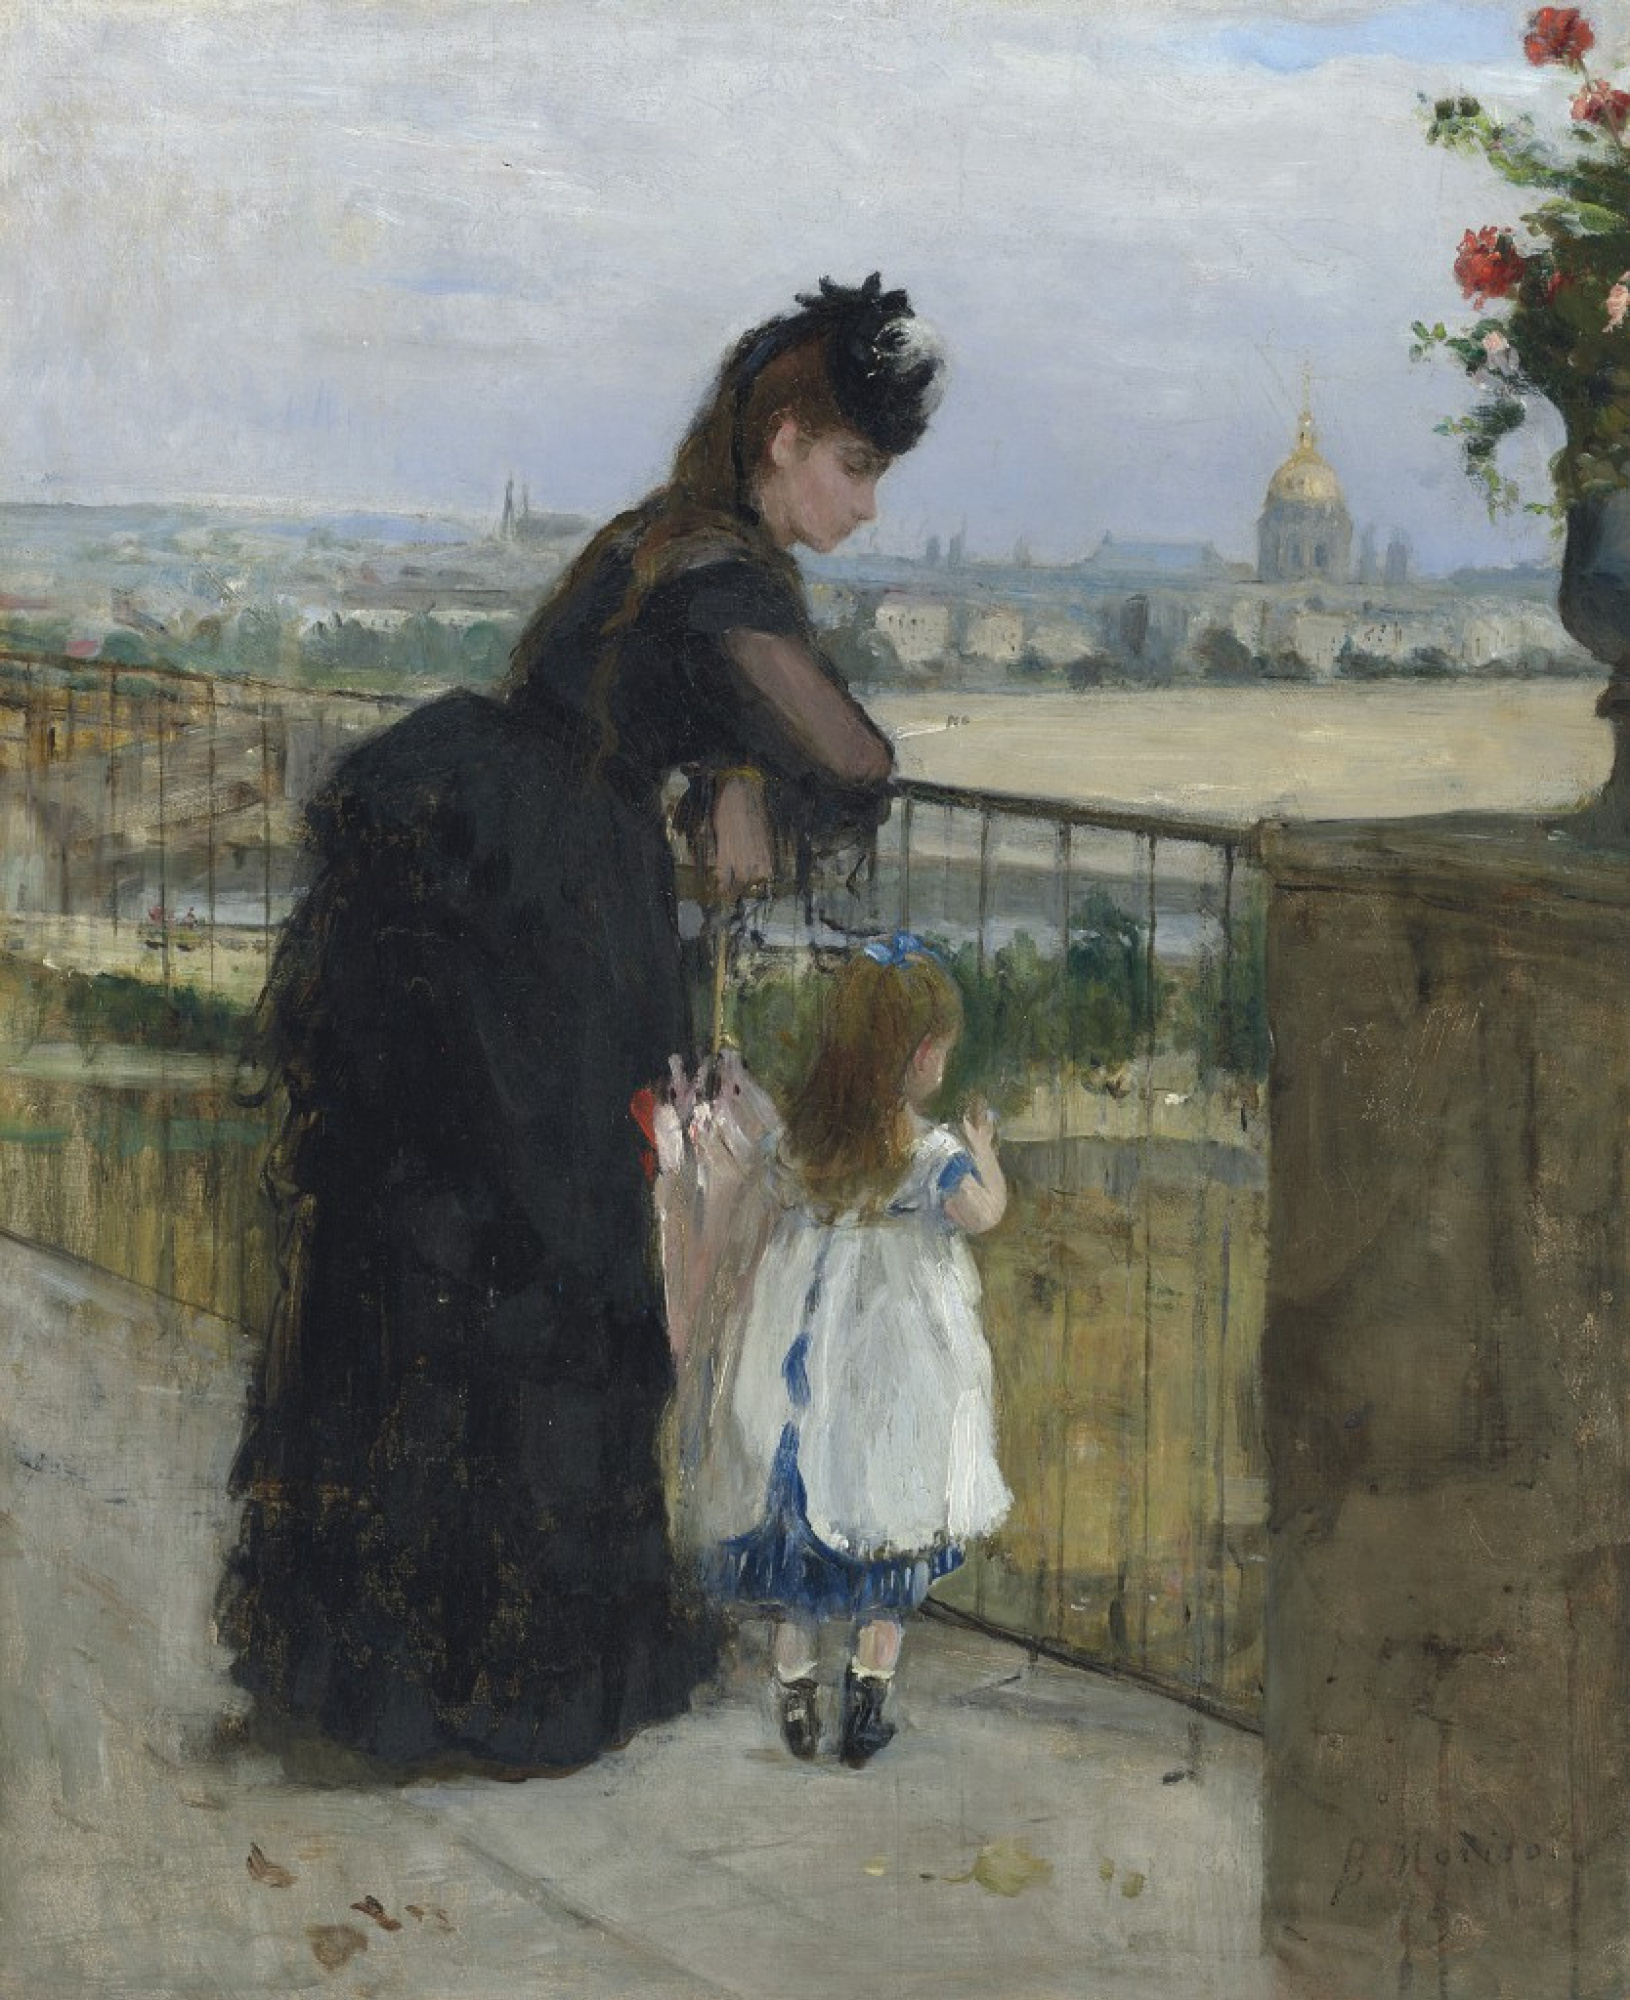 Berthe Morisot. A woman with a baby on the balcony